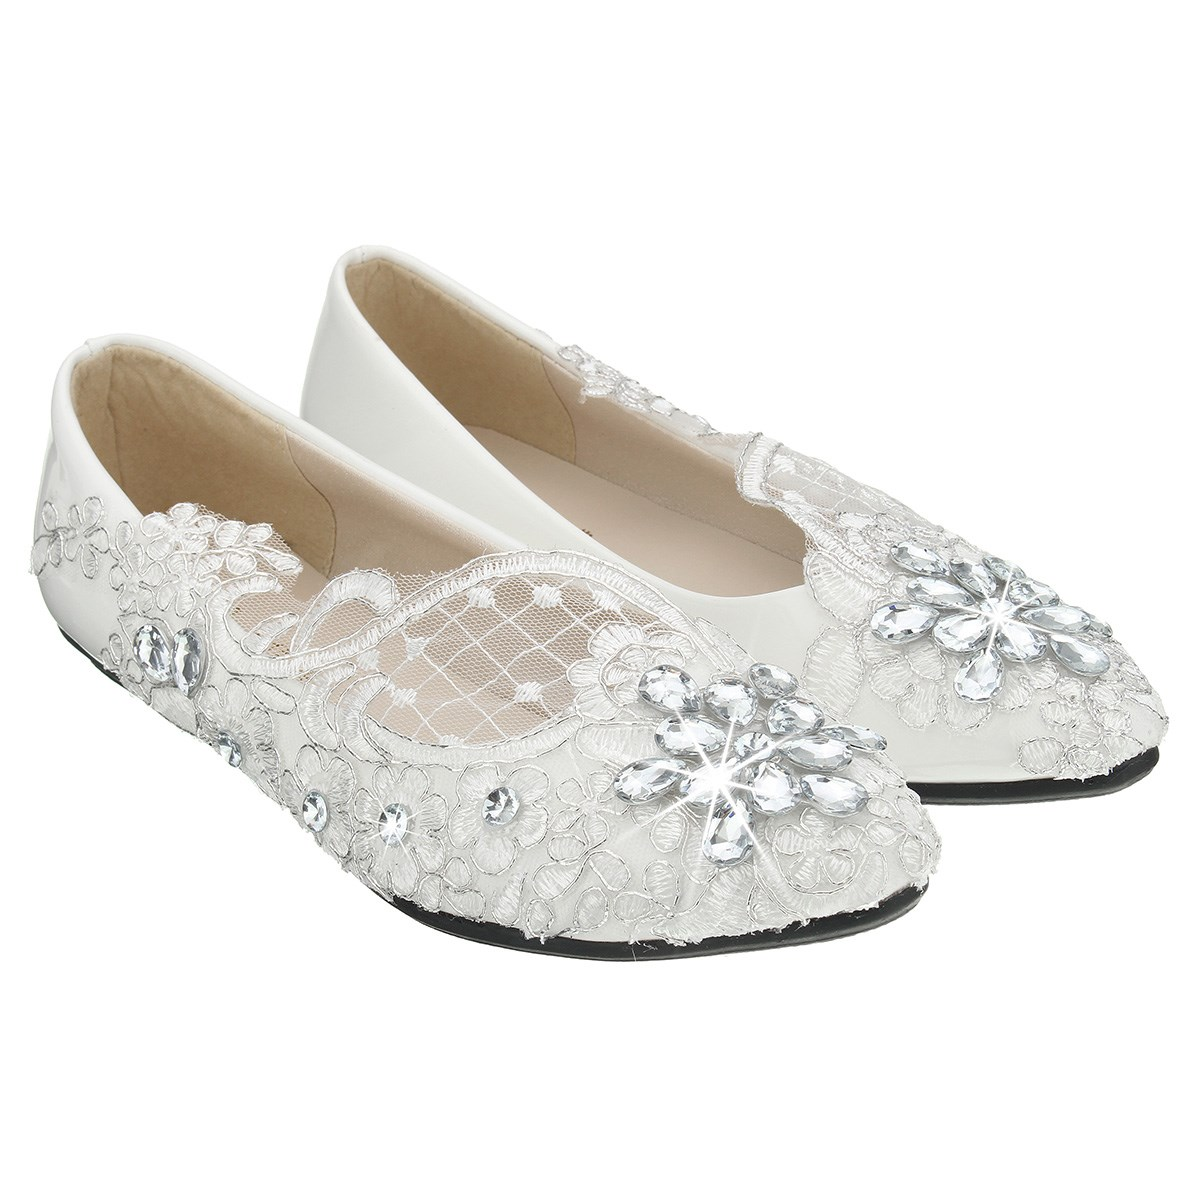 Flats. Not every day is a party, but just because you're not rocking your hottest heels doesn't mean that you can't look stylish. GoJane carries cute flats, loafers and other flat shoes that are perfect for your most casual days.